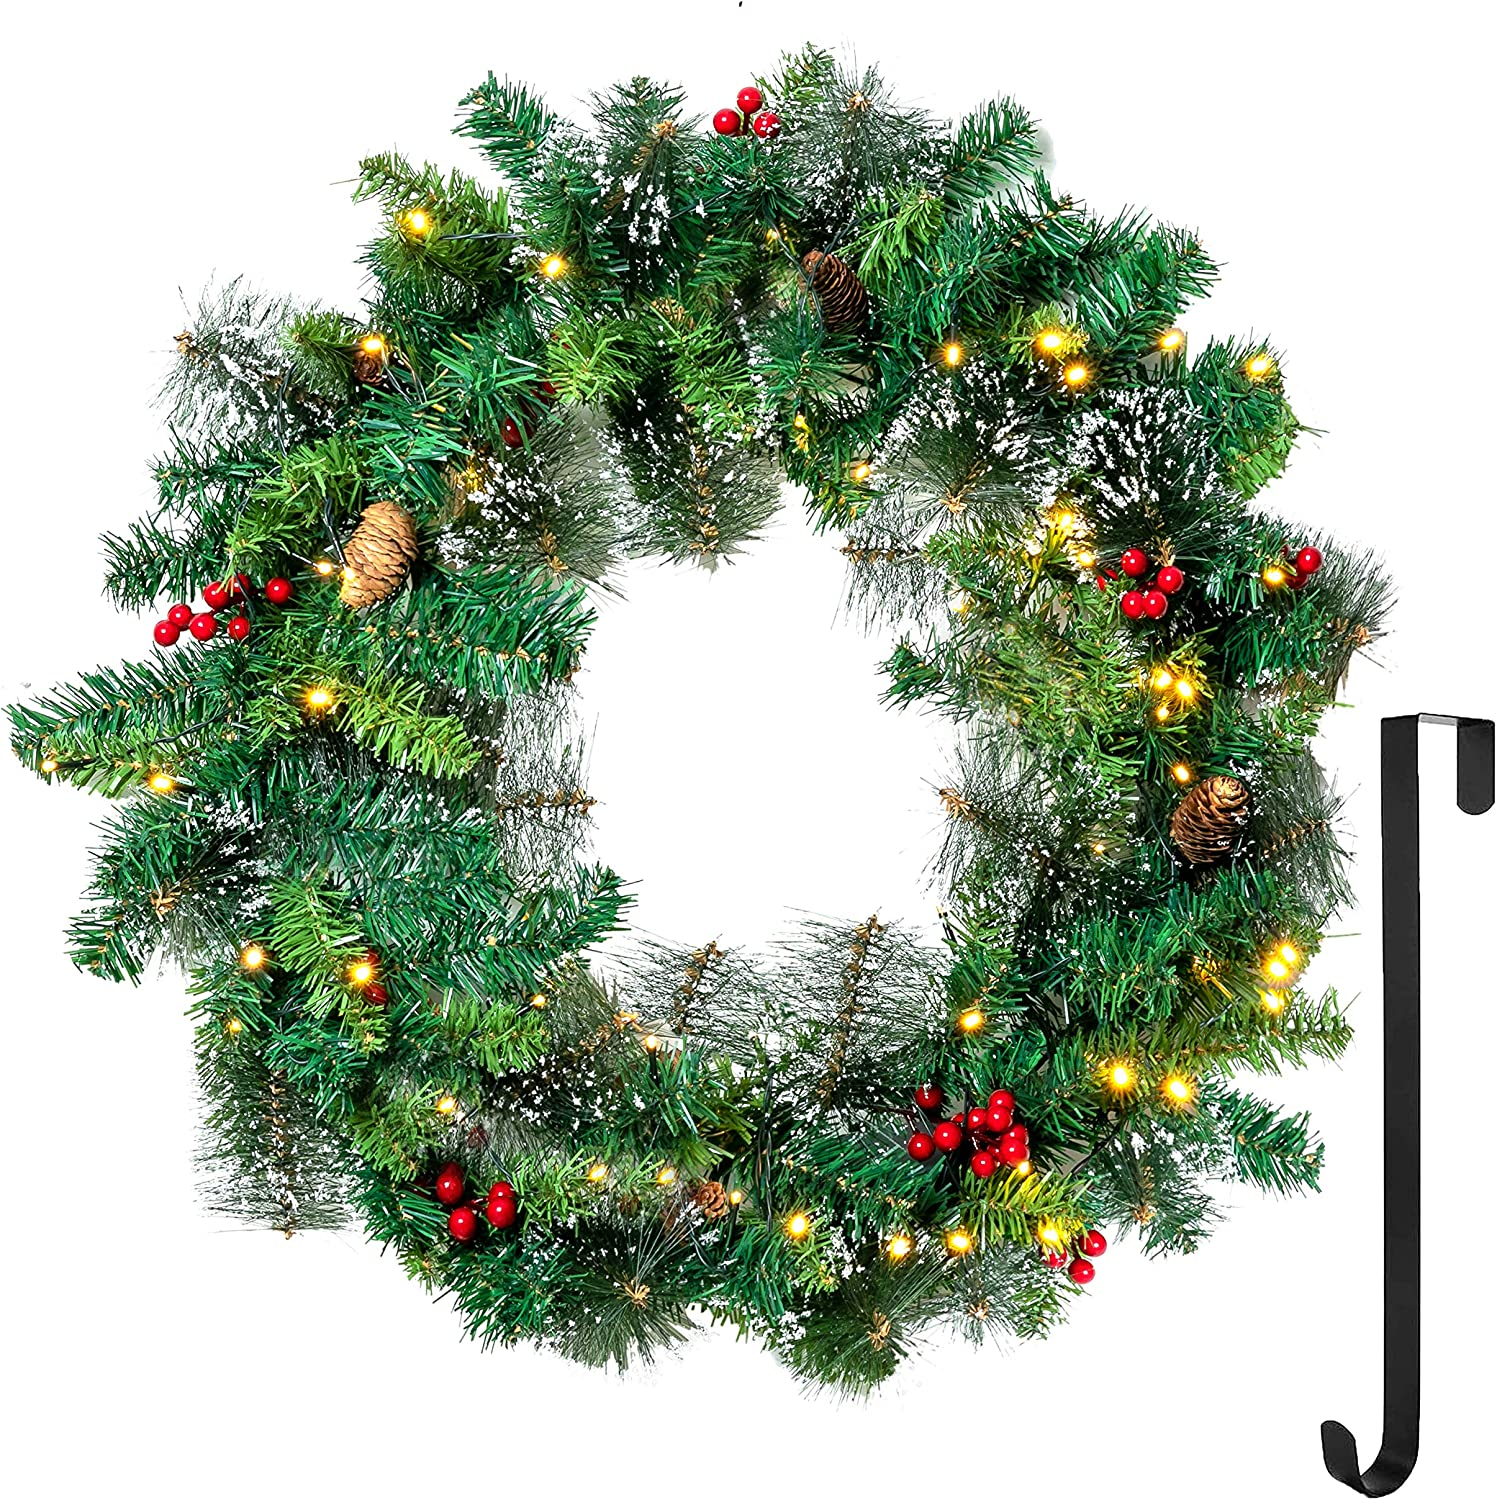 "24"" Snow Flocked Christmas Wreath with 15"" Hanger, Pre-lit Artificial Wreath with 50 LED Lights, Red Berries, Pine Cones for Front Door Wall Christmas Decorations (Battery Operated)"